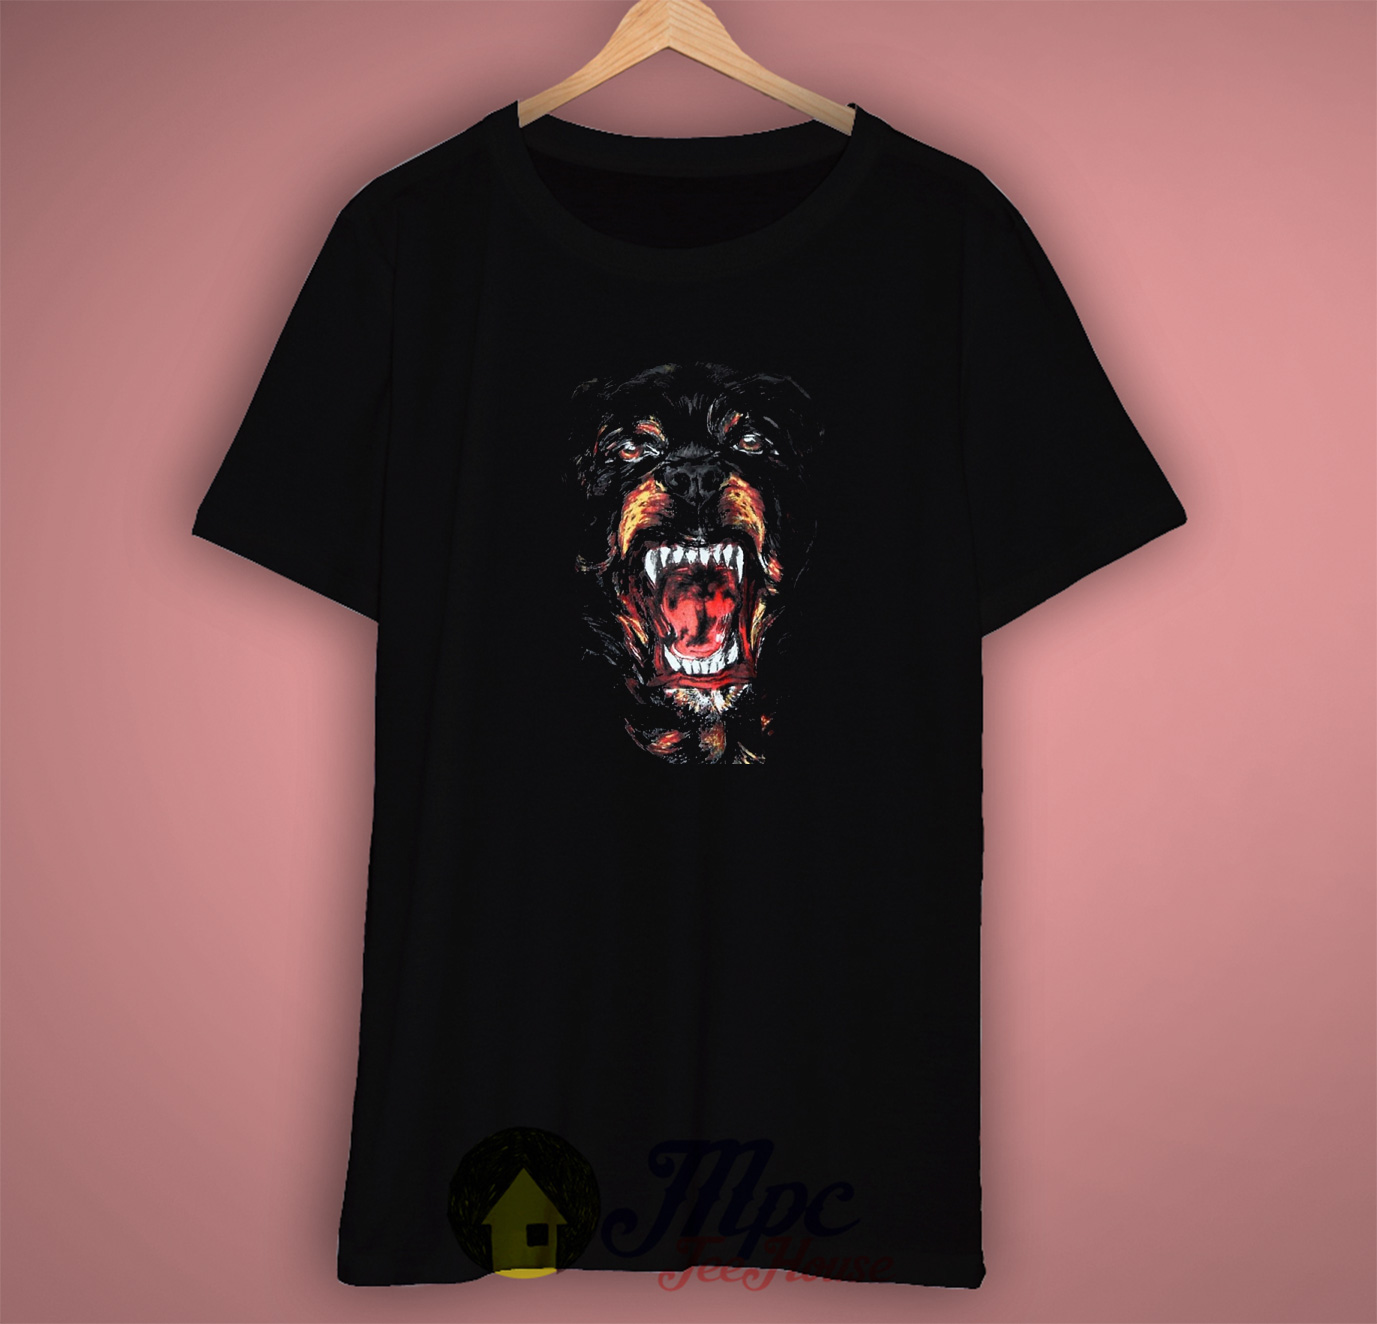 b6b58198 Givenchy Tee Dog | The Art of Mike Mignola